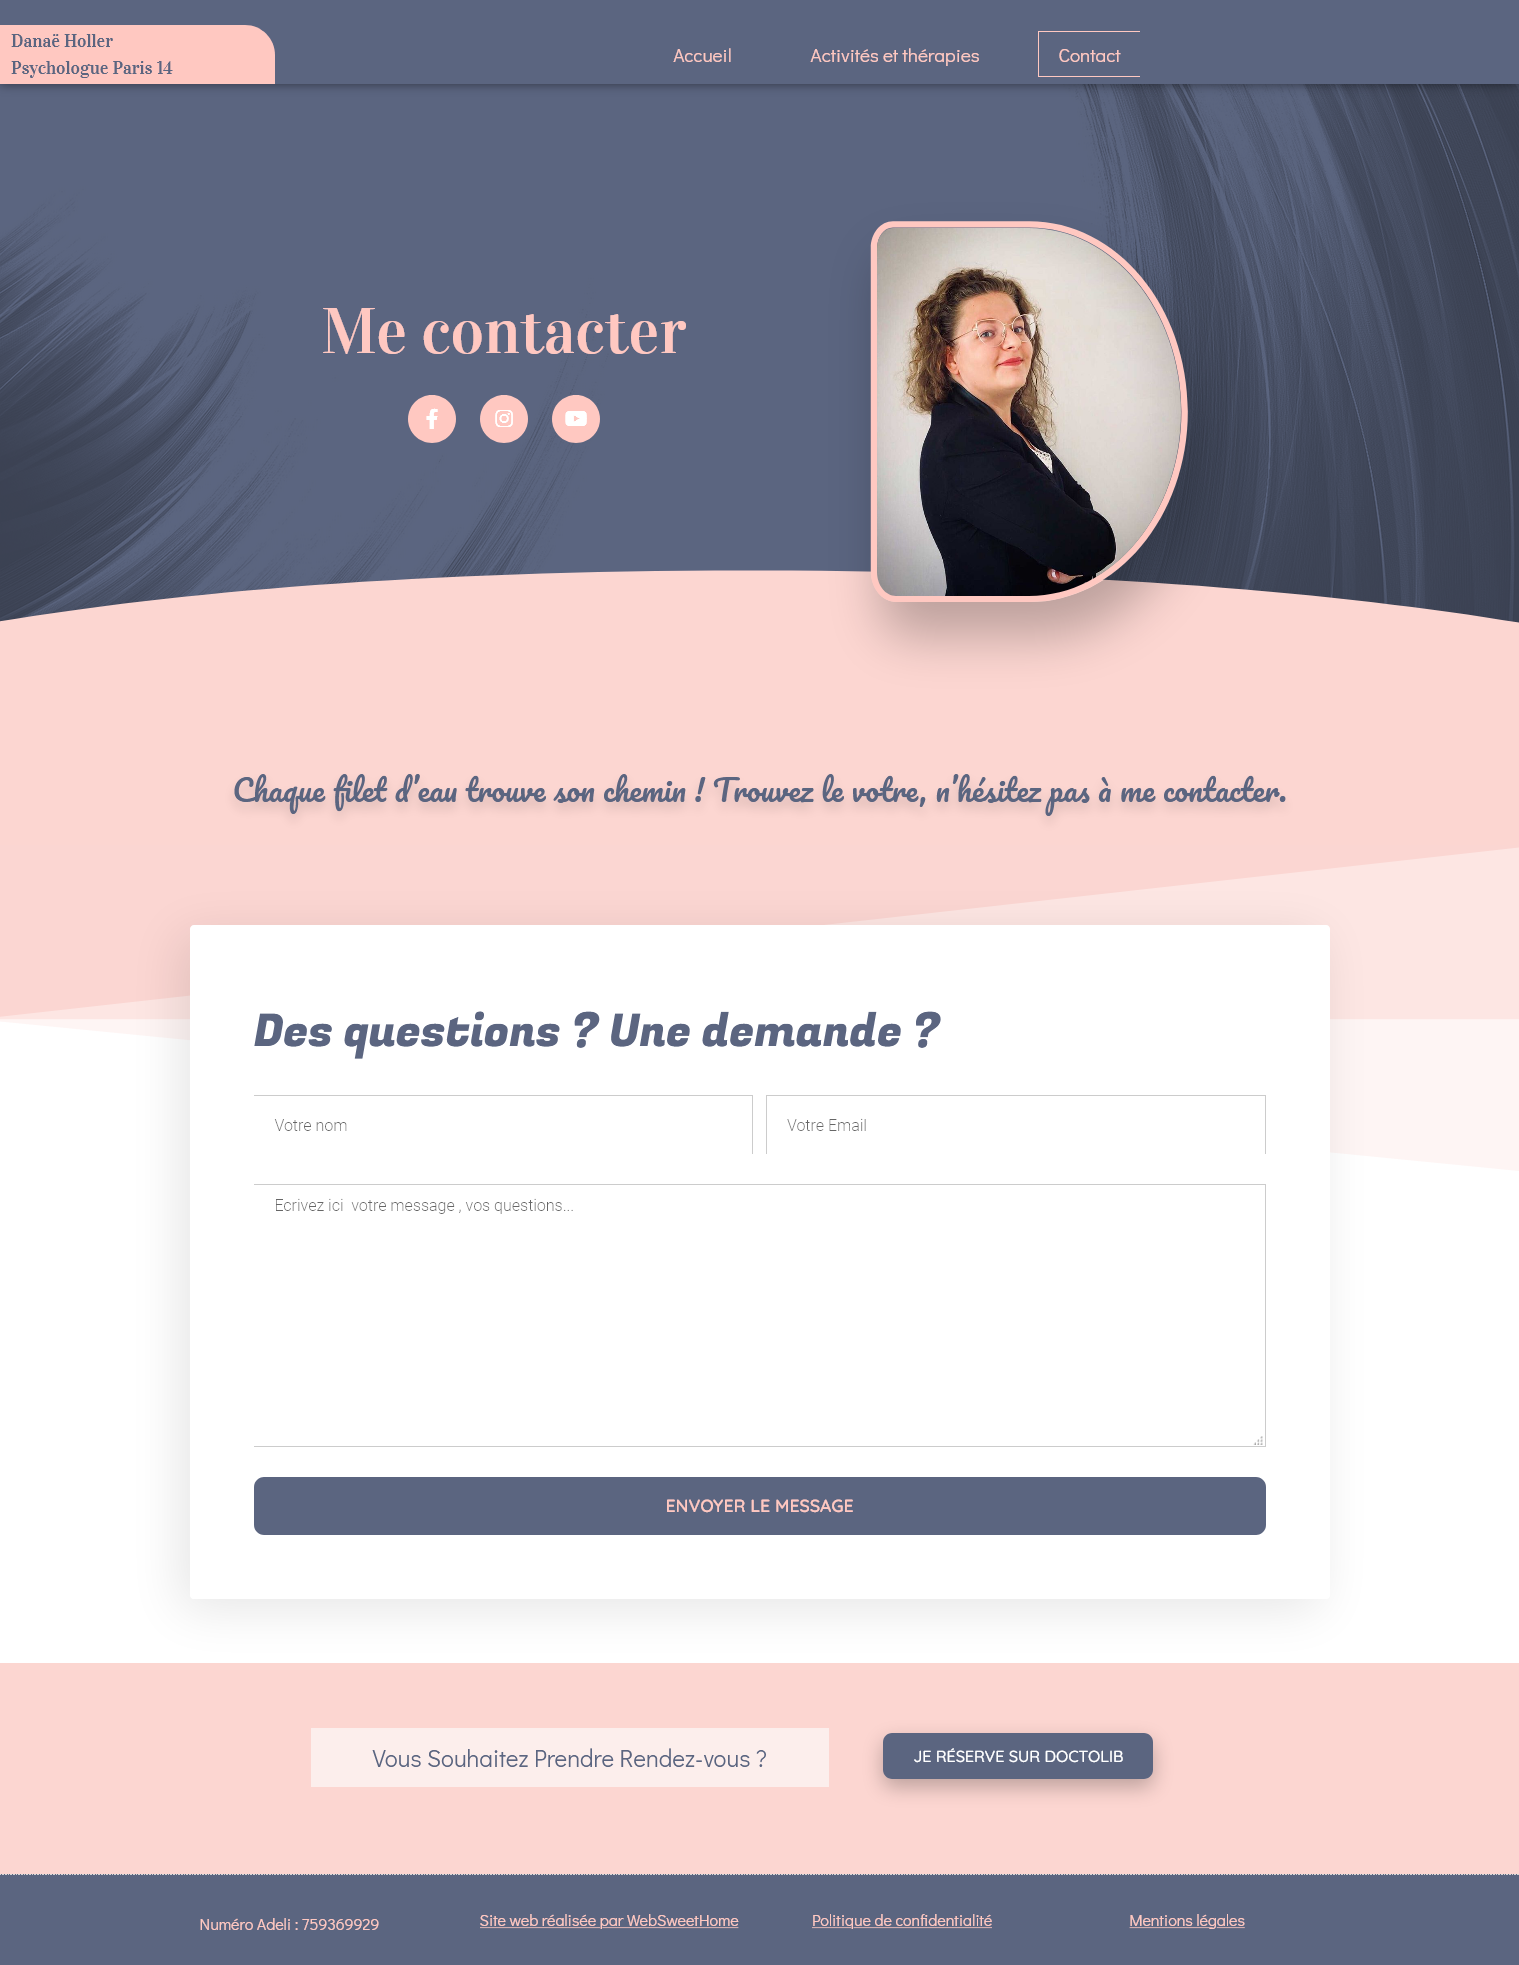 Site internet professionnel pour psychologue - WebSweetHome